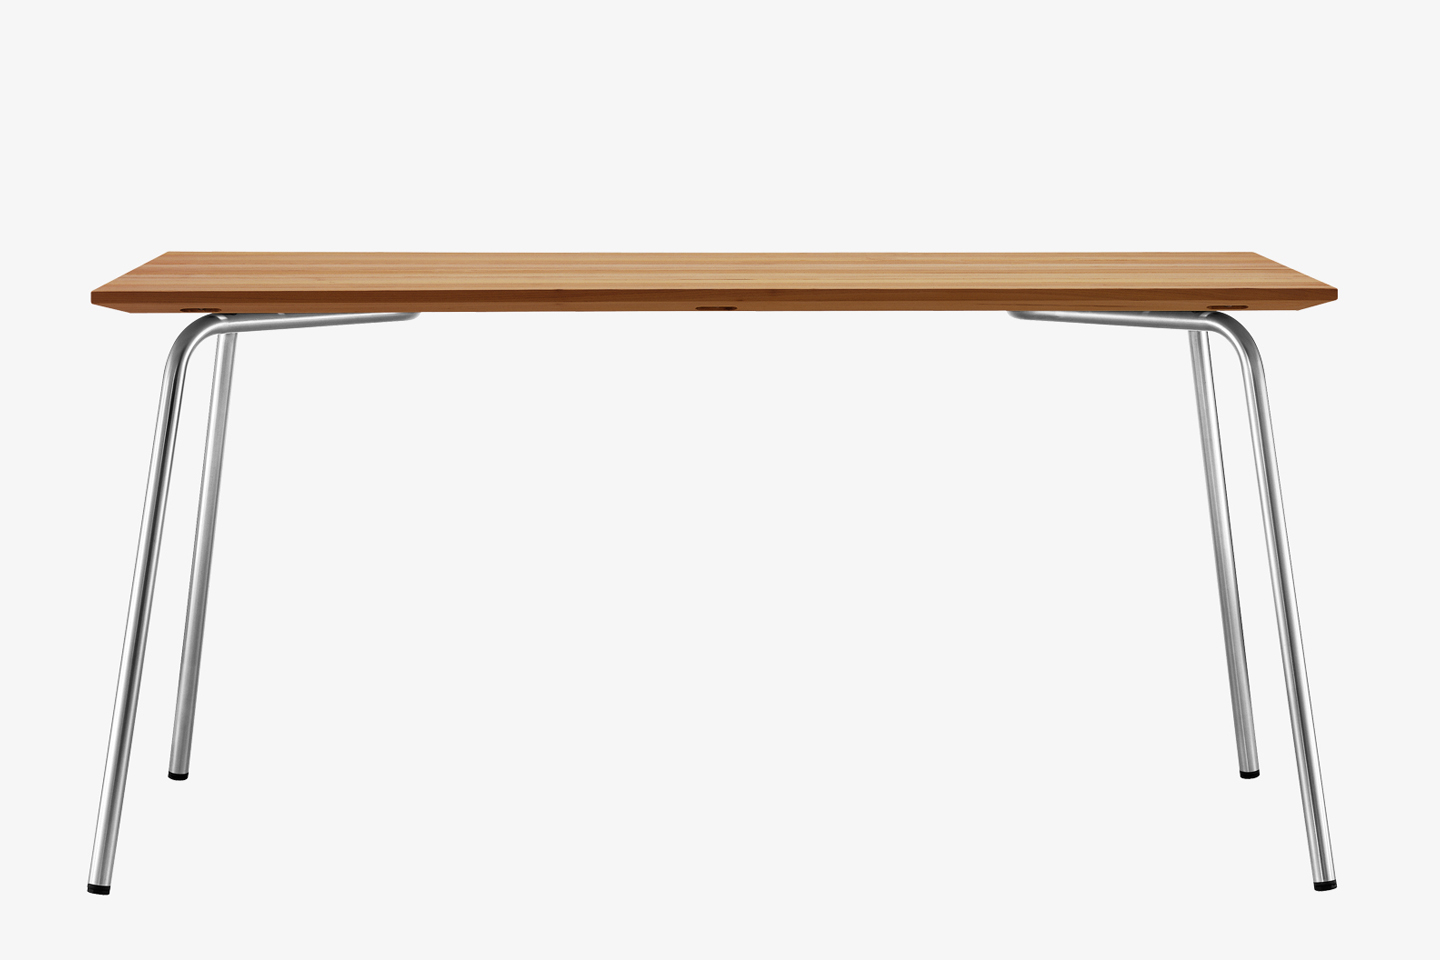 Charmant The Classic Patio Table   Beautiful, Simple, And Robust